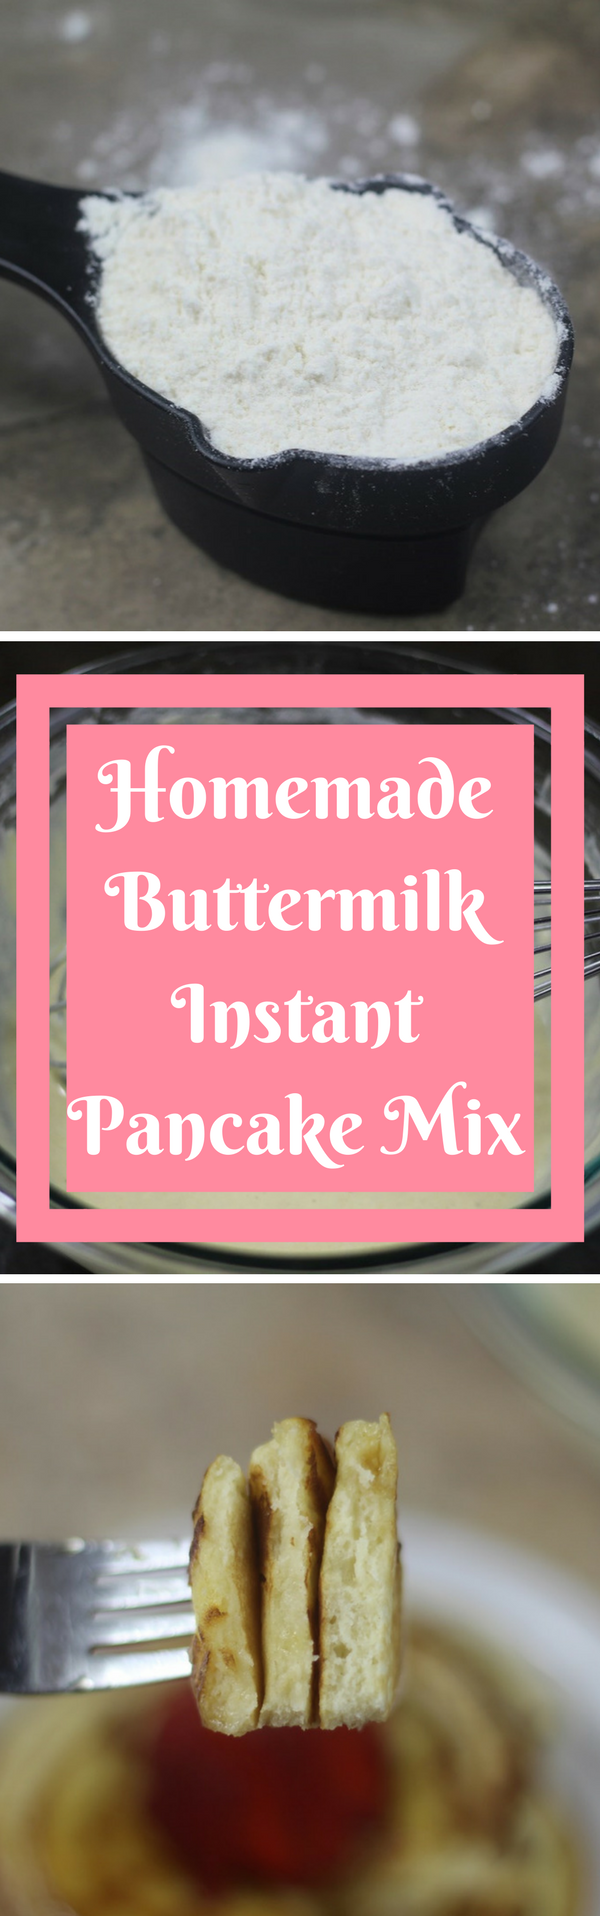 Homemade Buttermilk Instant Pancake Mix